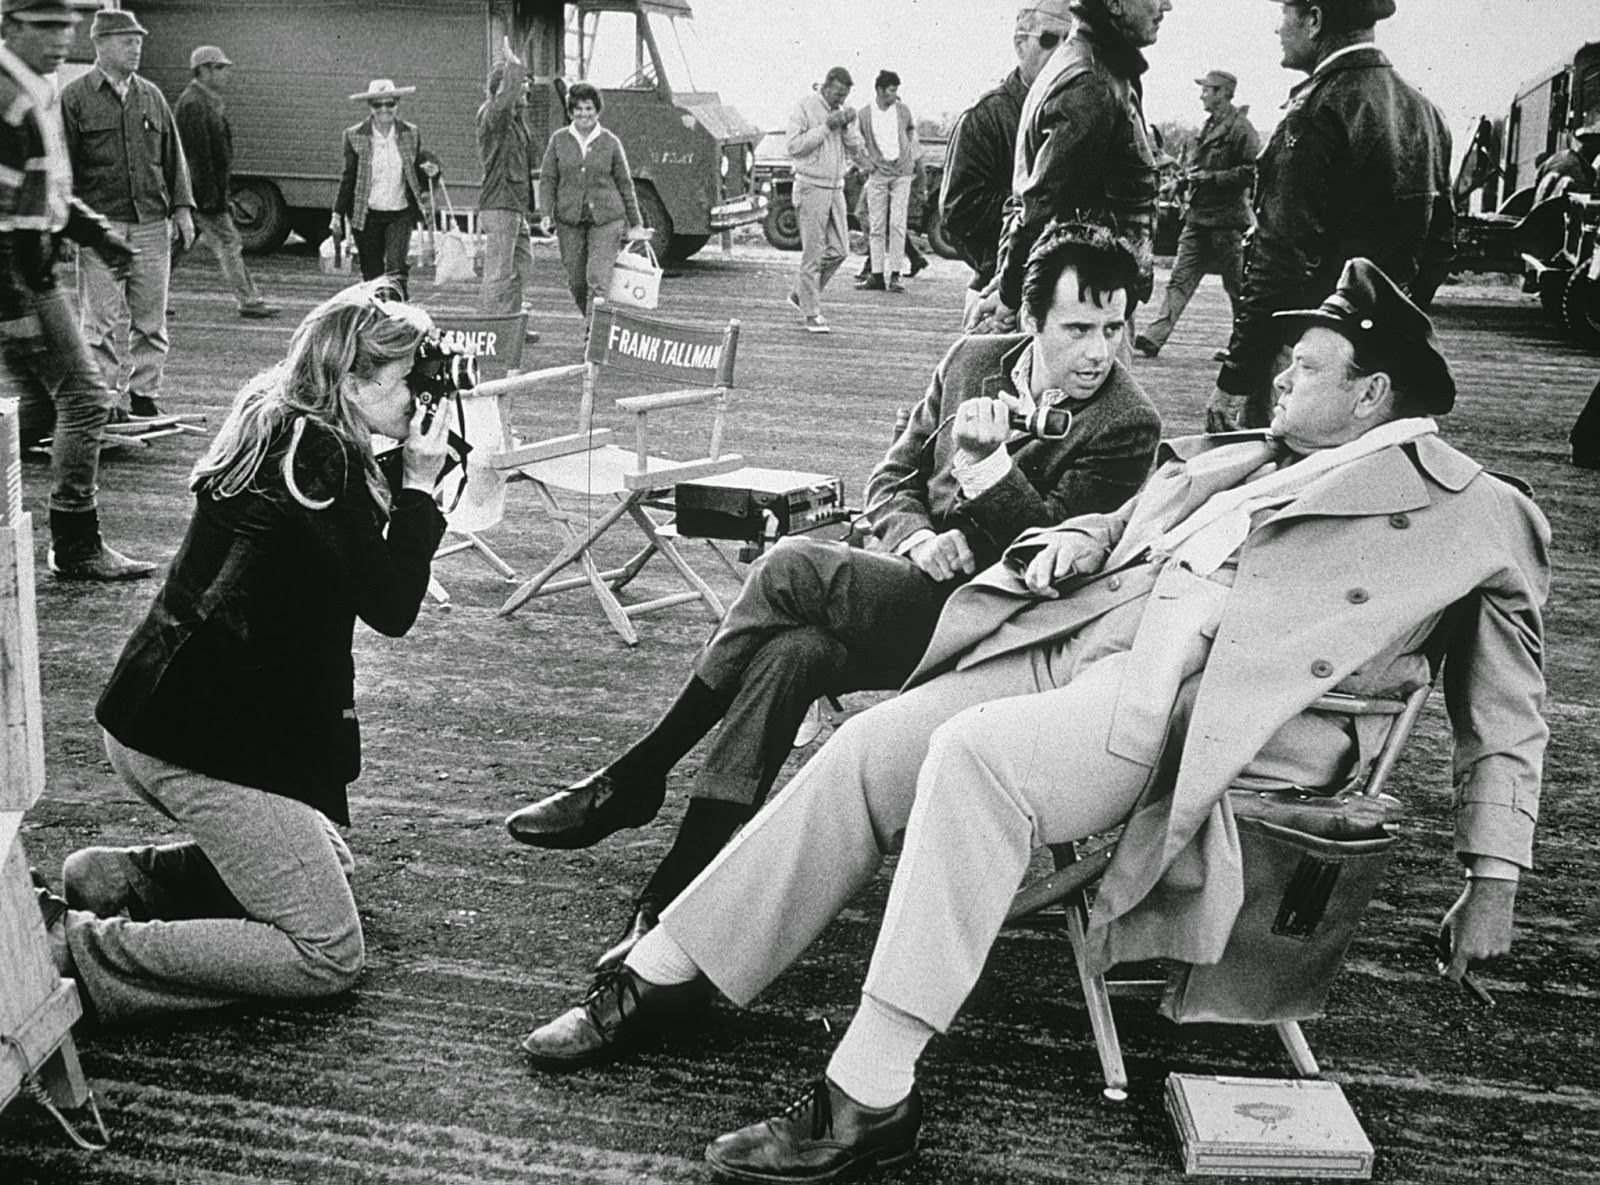 """Candice Bergen visits the """"Catch-22"""" set in Mexico, photographing Peter Bogdanovich as he interviews cast member Orson Wells; 1969"""